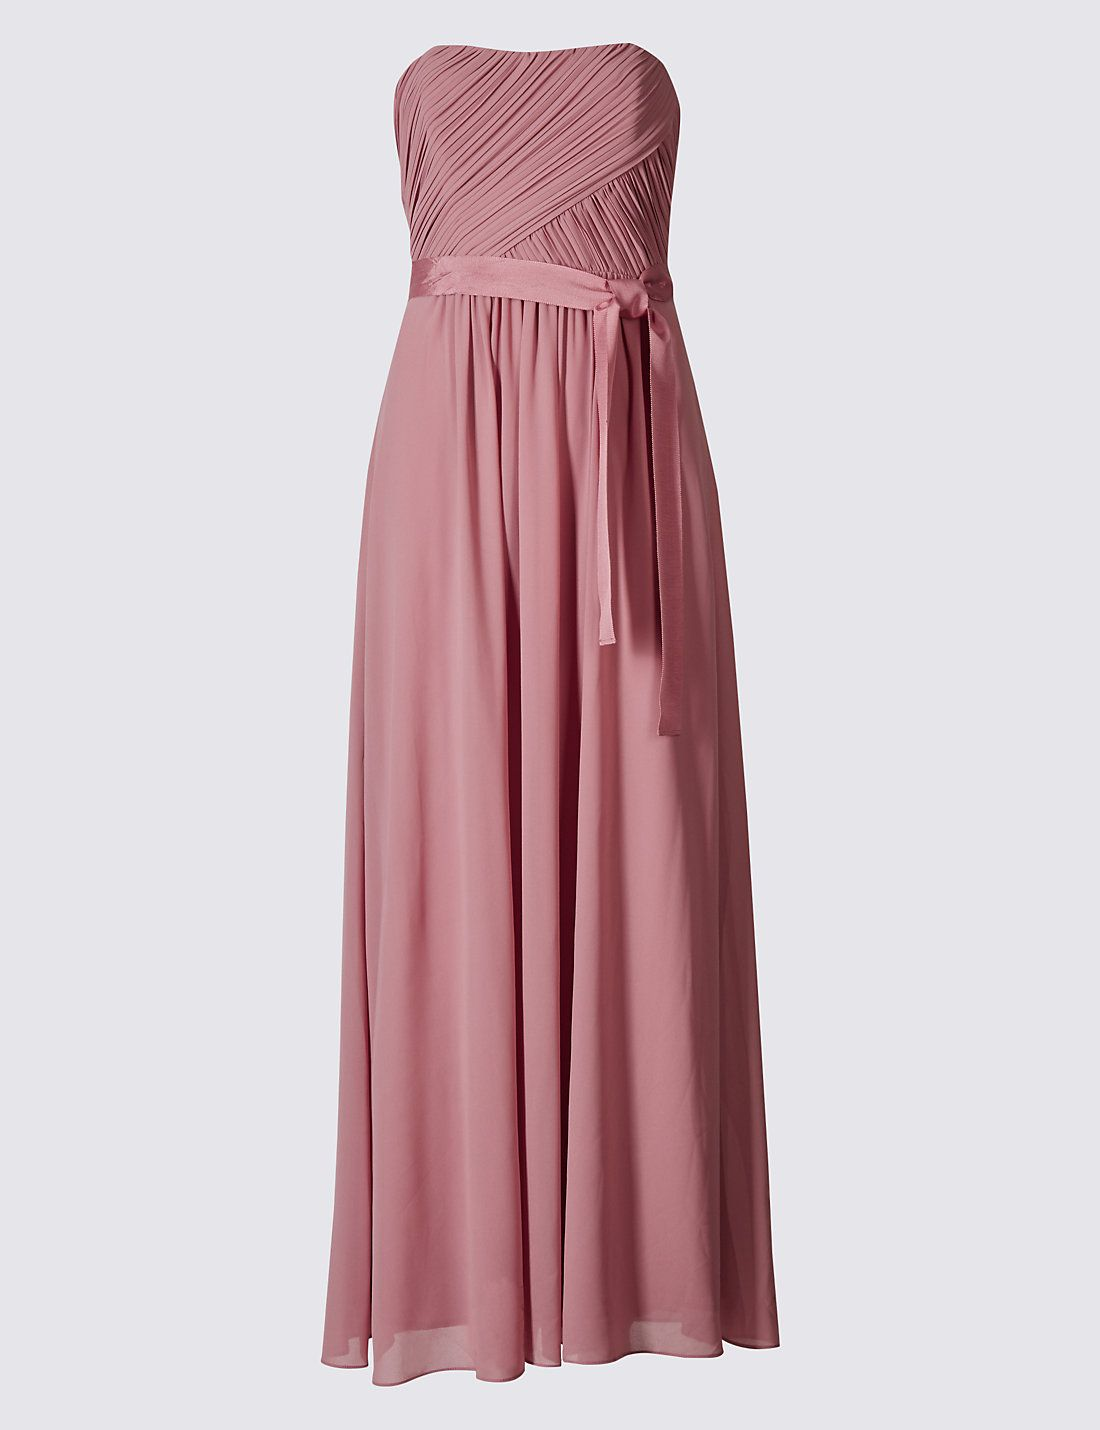 Strapless Pleated Maxi Dress with Belt in Antique Pink | Your dream ...